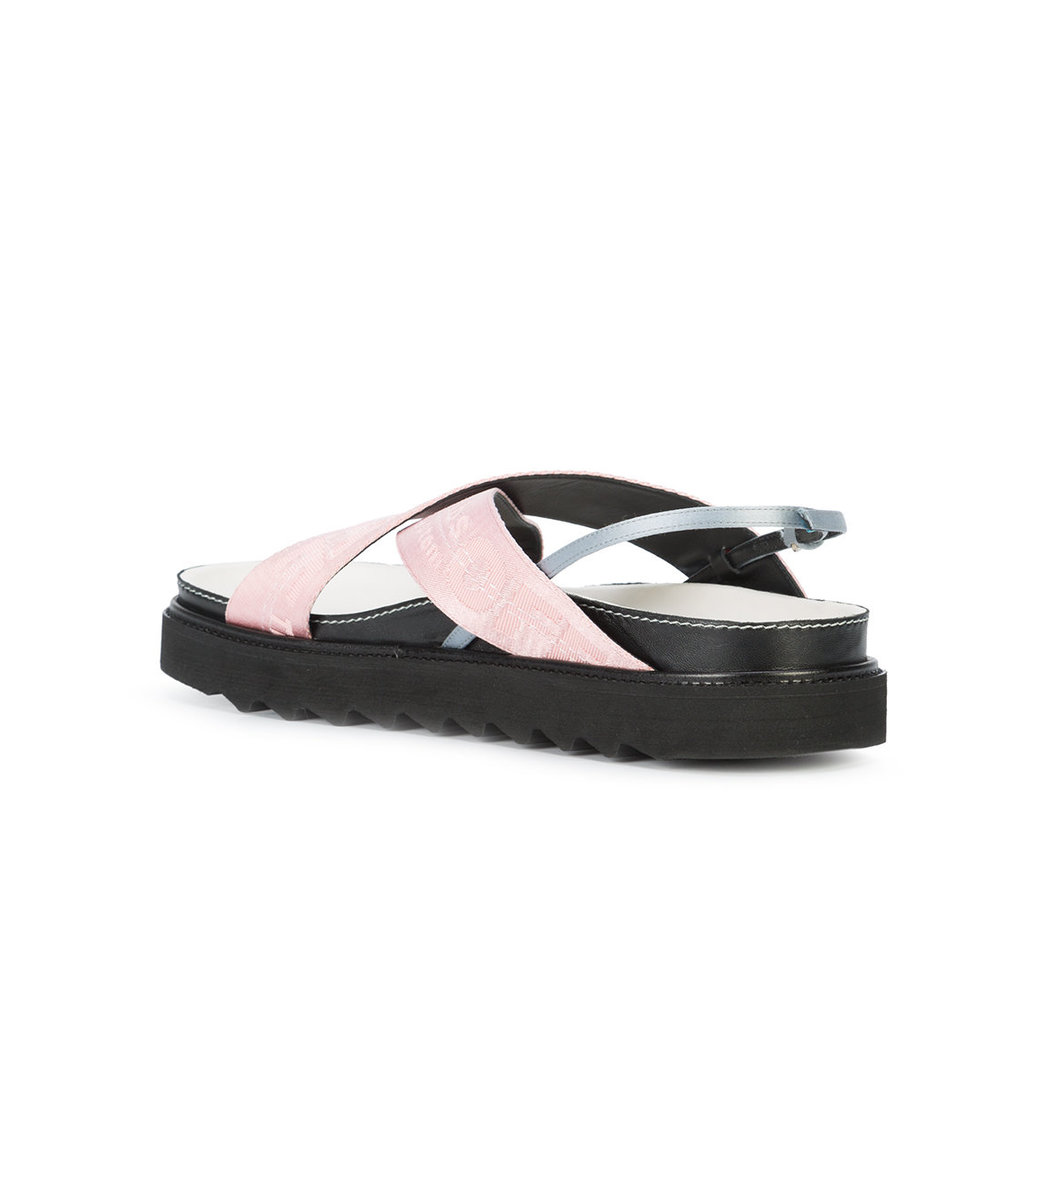 Sale Choice Low Price Online industrial strap sandals - Pink & Purple Off-white Sale Affordable Hurry Up K12NqeWmN